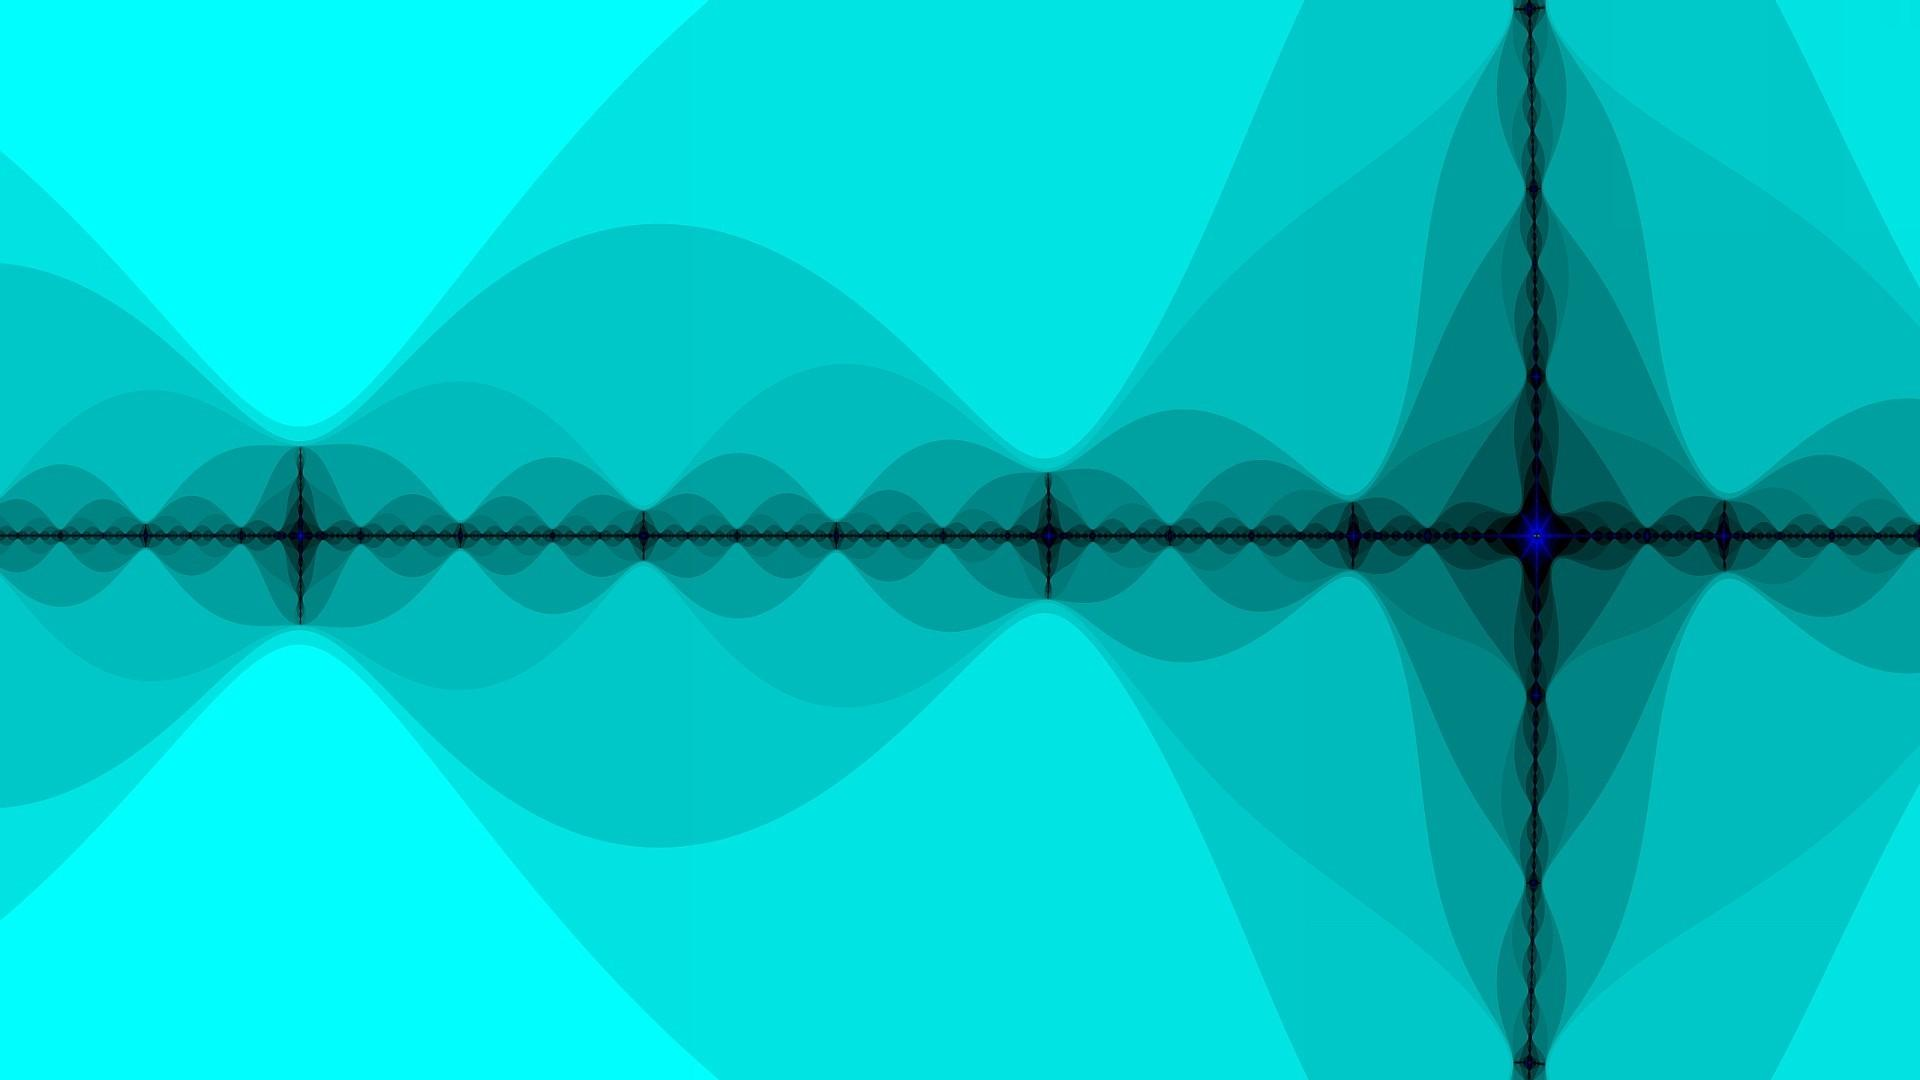 sound_abstract_sound_waves_wave-24858